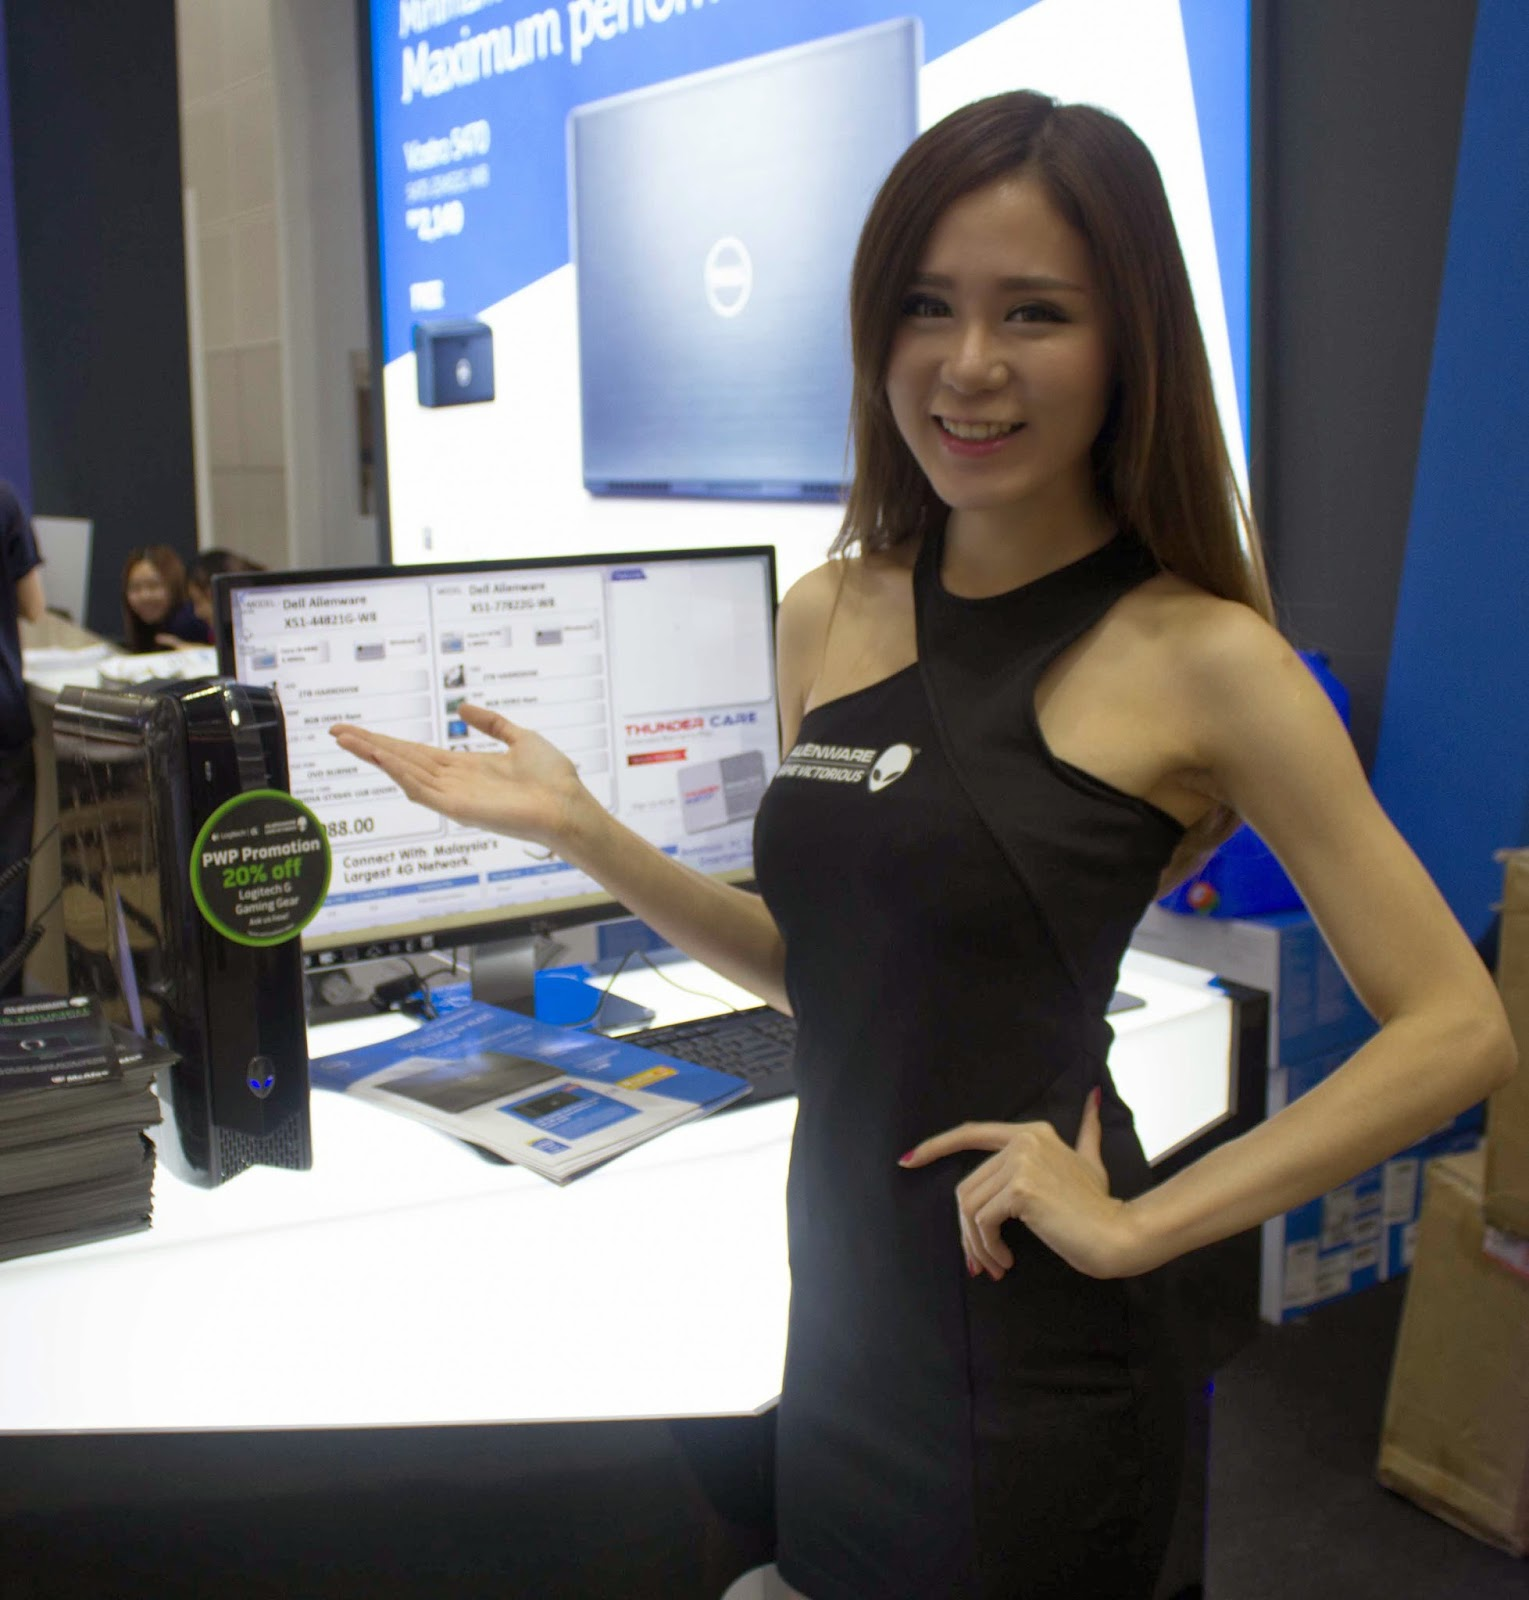 Coverage of PIKOM PC Fair 2014 @ Kuala Lumpur Convention Center 298